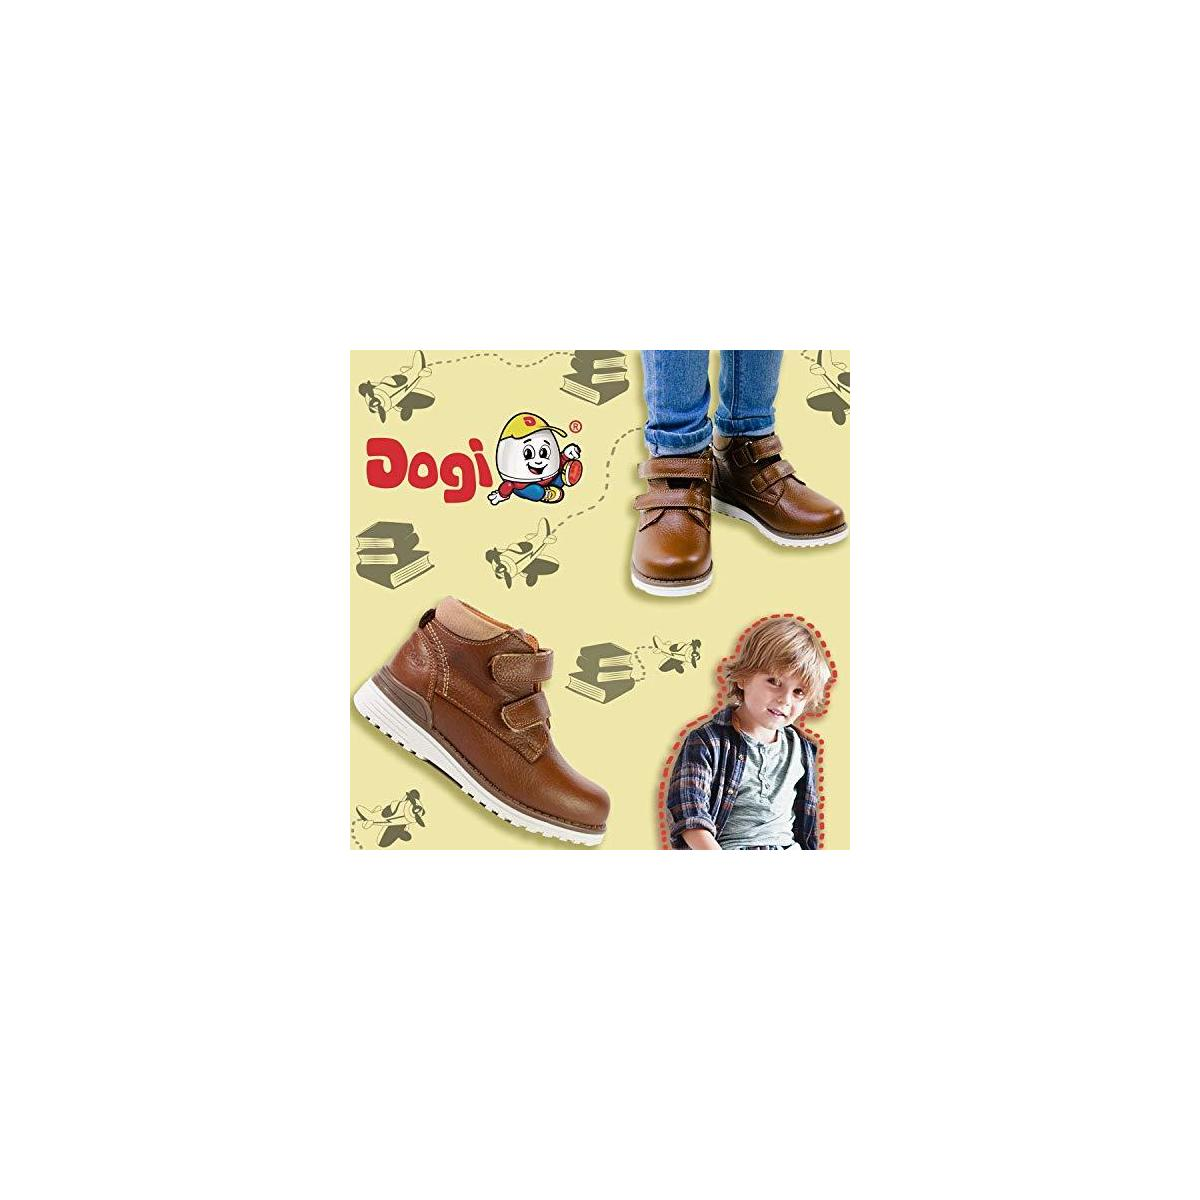 DOGI Boys Velcro Chukka Boot - Premium Full Grain Leather Slip On Chukkas with Rounded Toe, Anti-Shock Insole and Lightweight Outsole - Jack